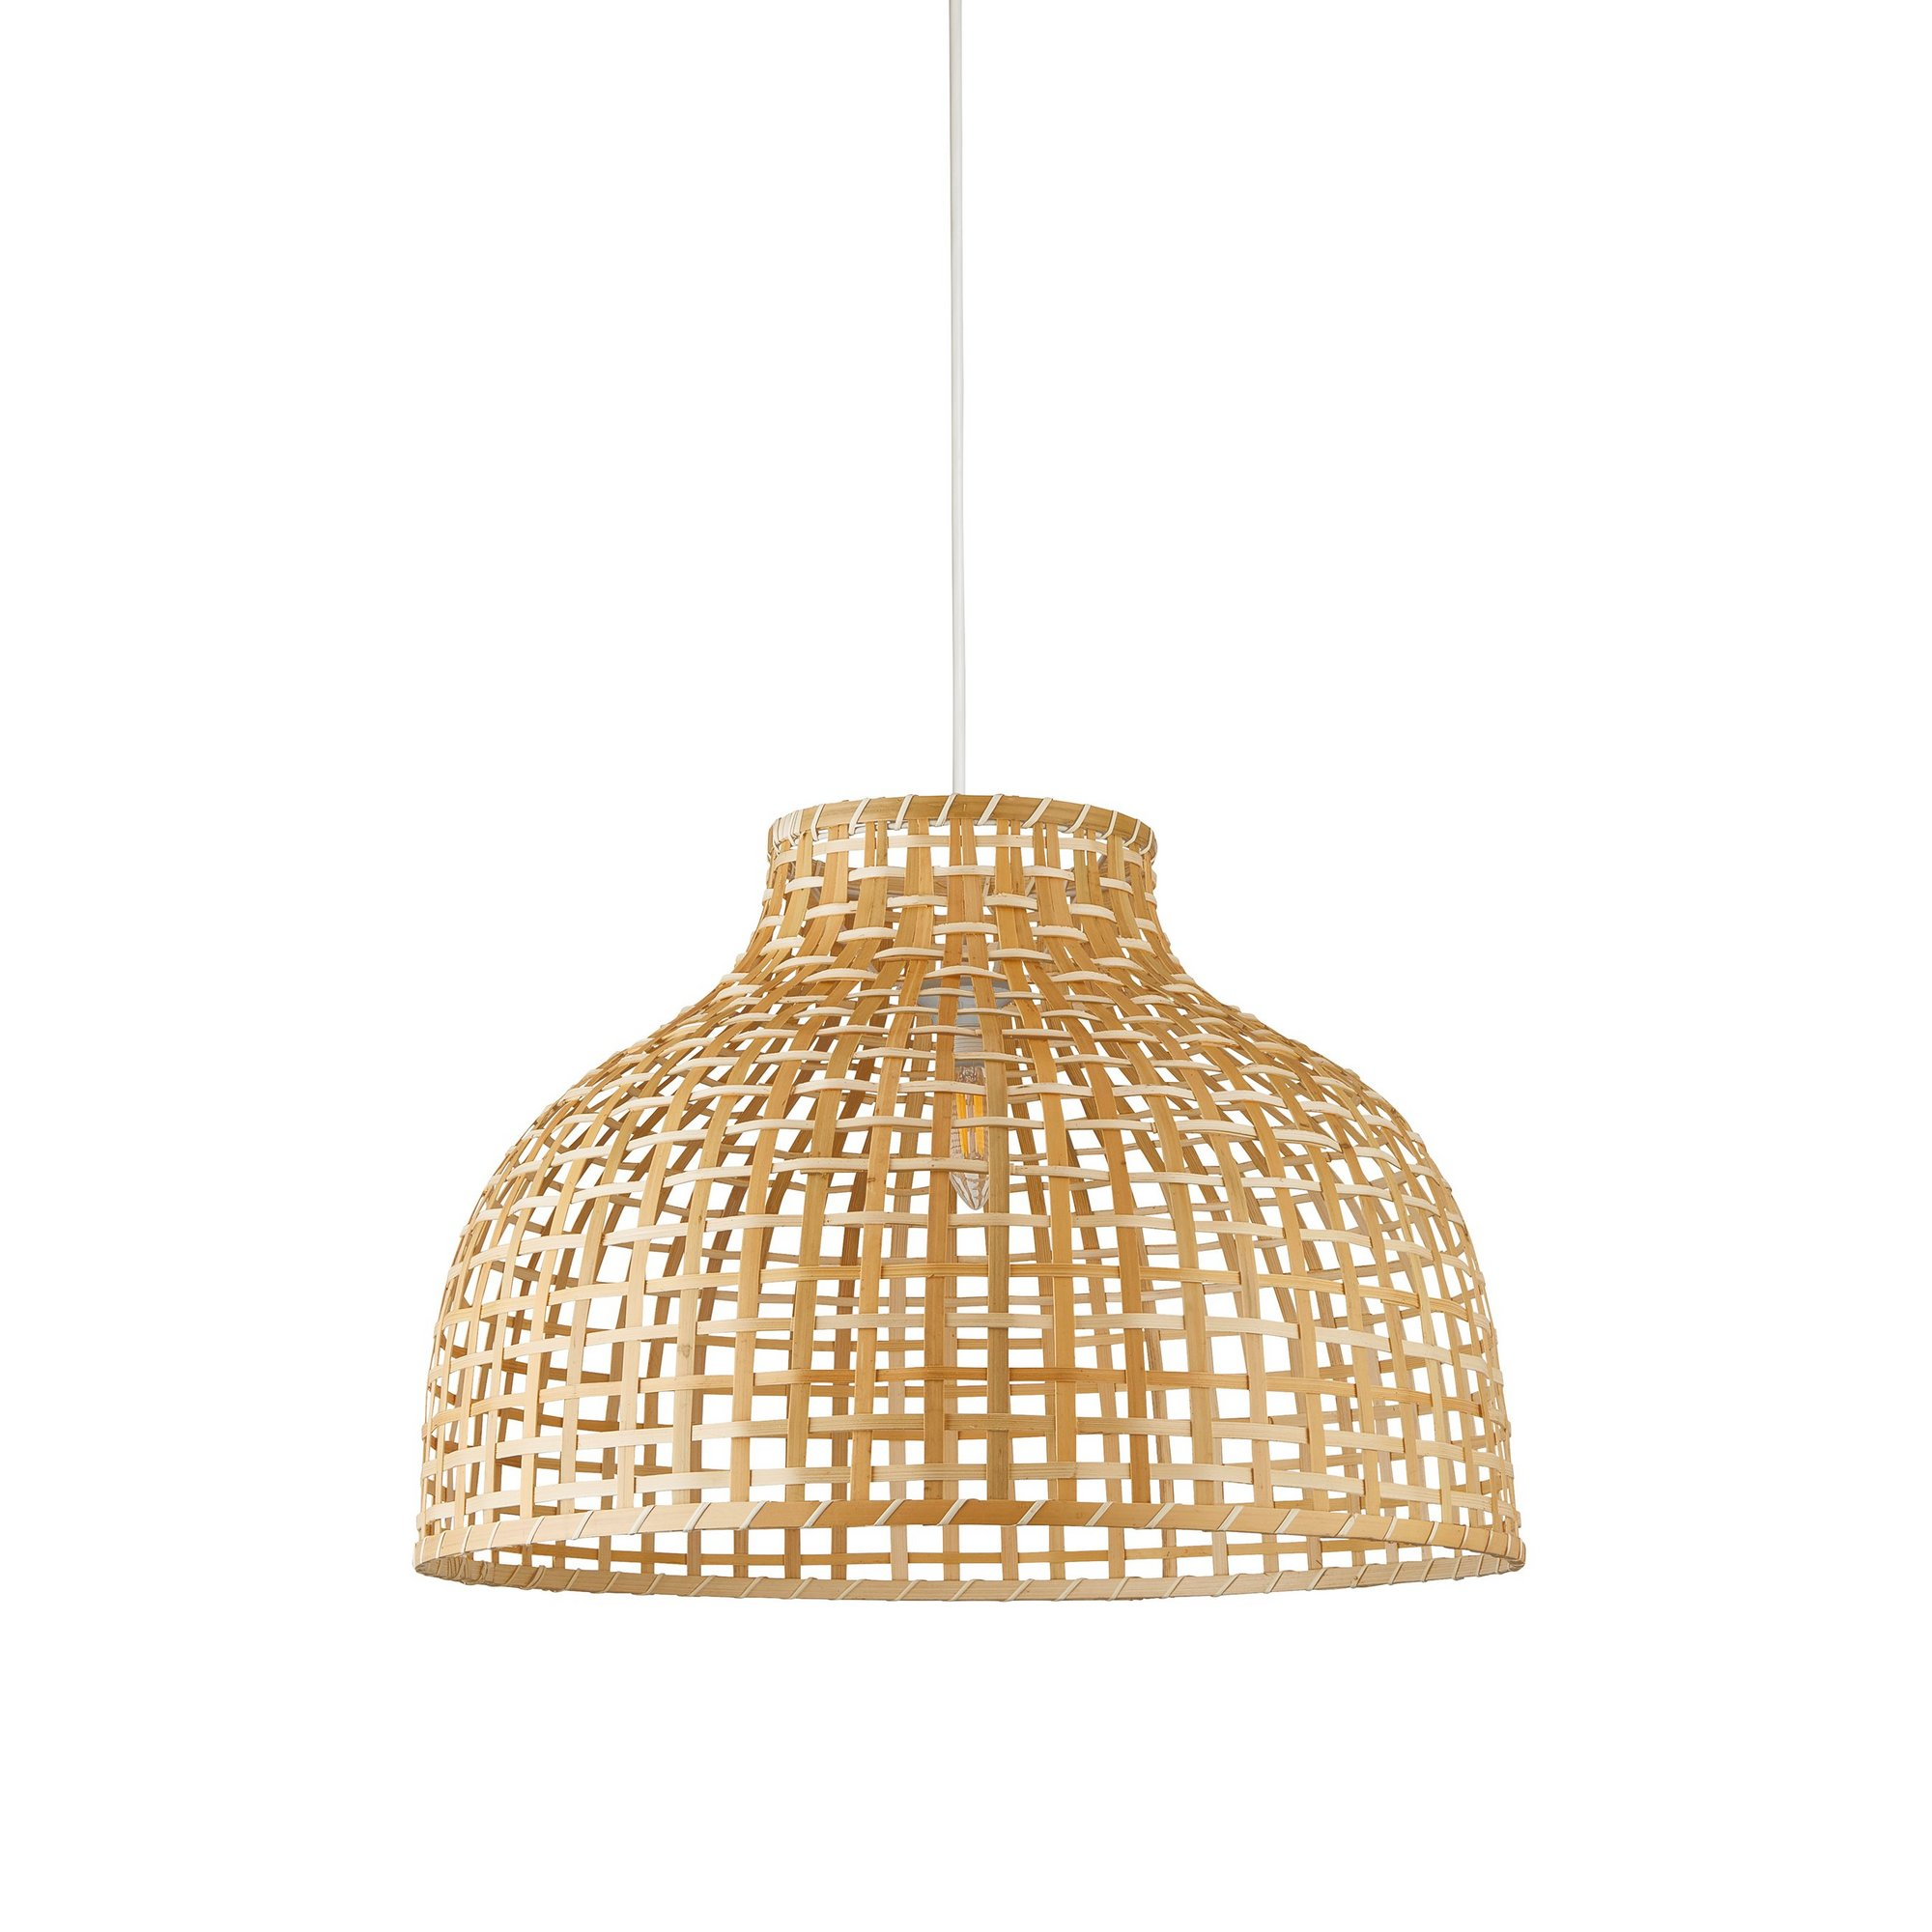 Image of Bamboo Dome Easy Fit Light Shade